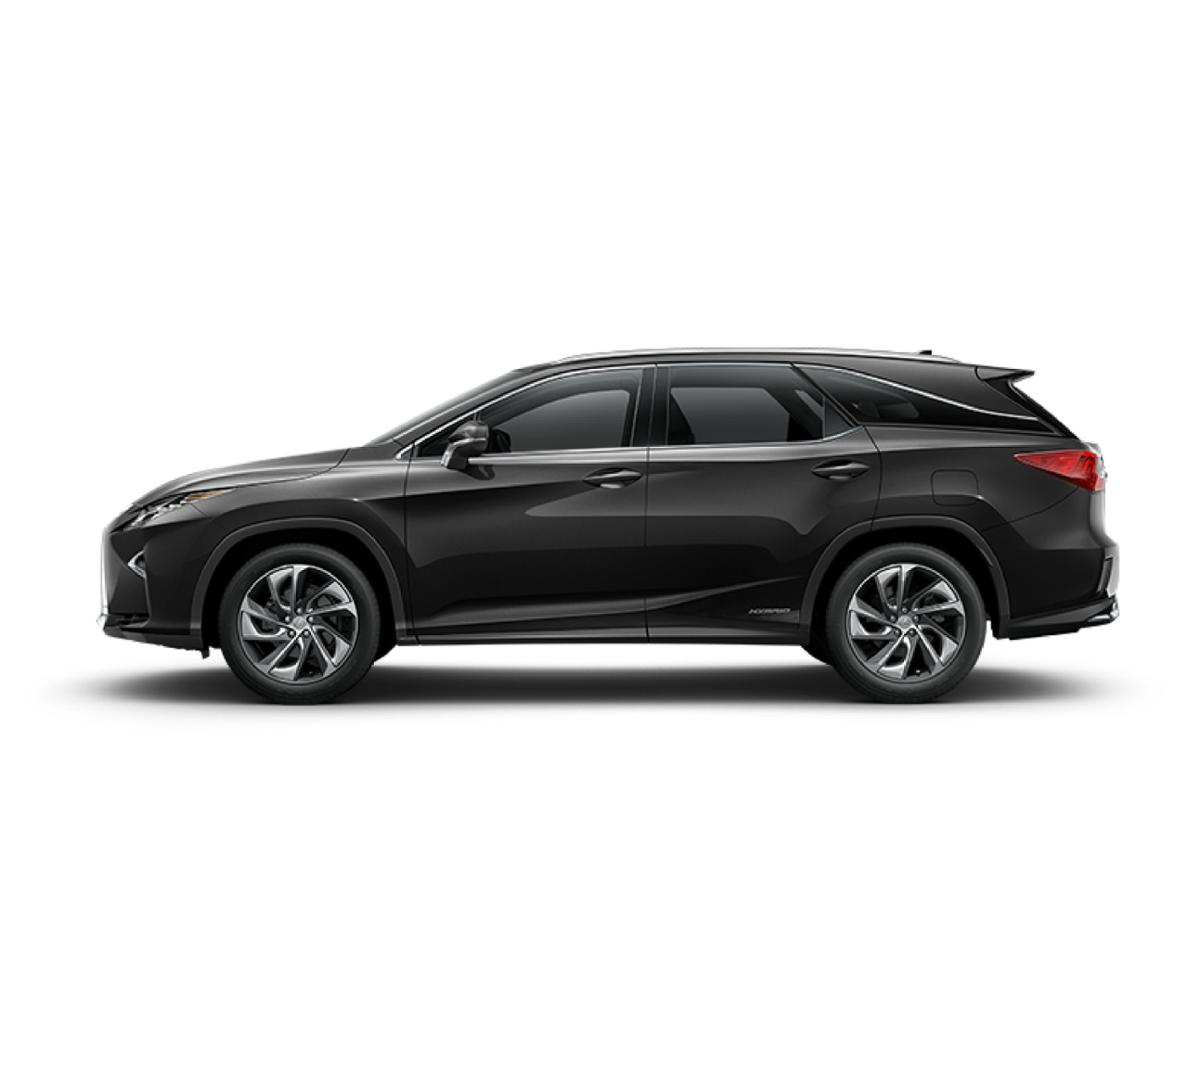 Lexus Dealership In Va: Caviar 2018 Lexus RX 450hL Luxury Alexandria